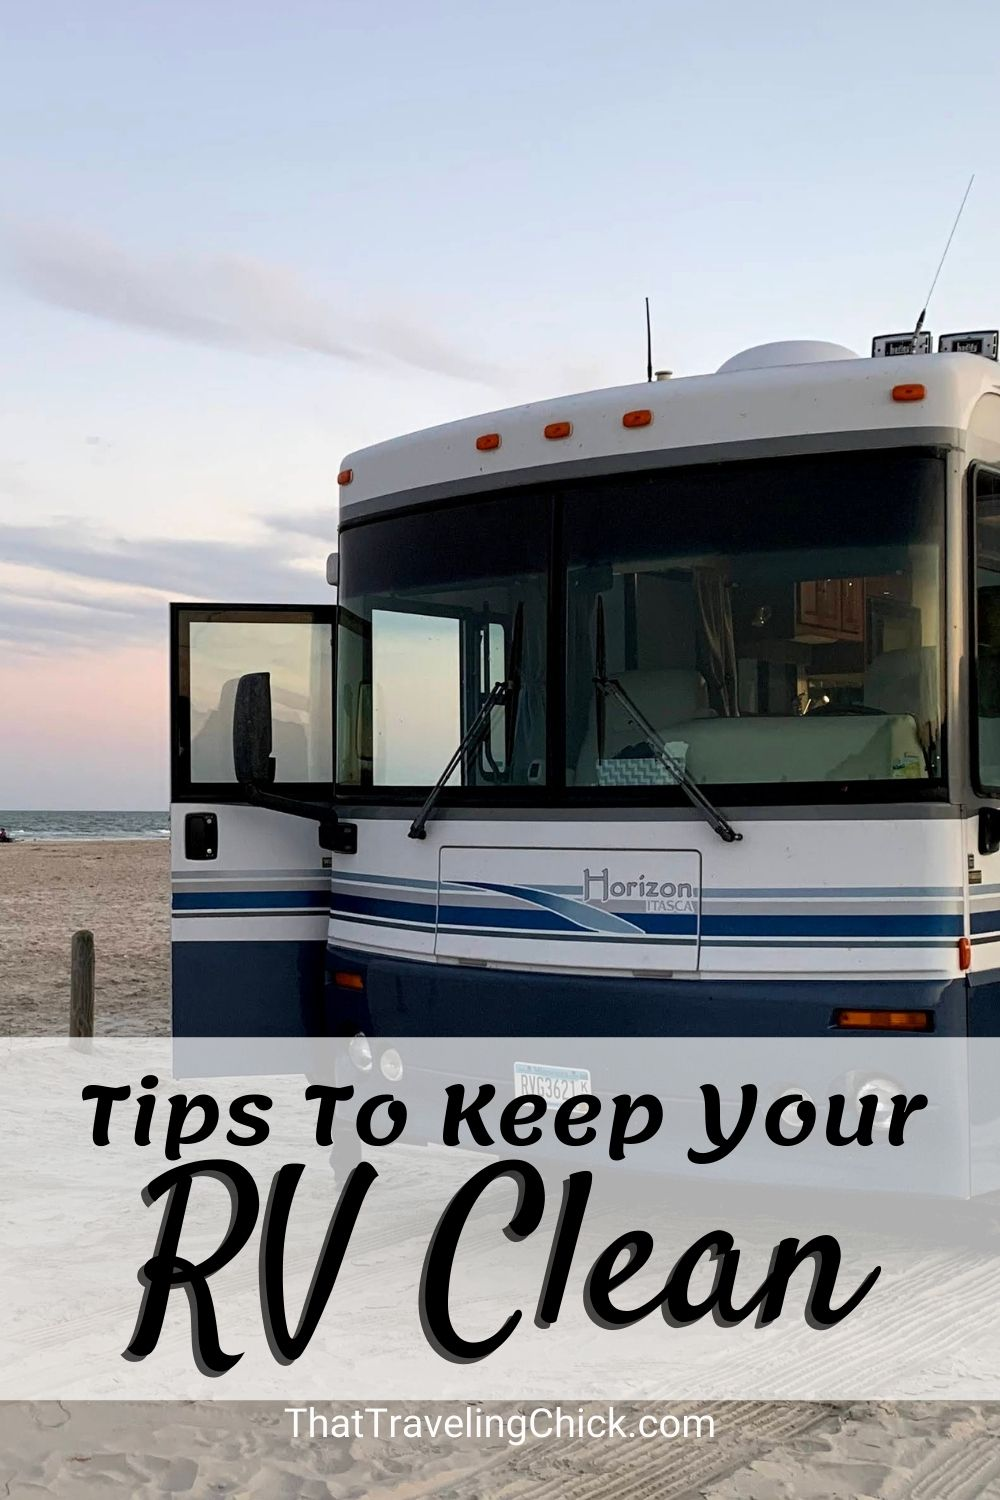 Tips to Keep Your RV Clean #rvcleaning ##neatorobotvacuum